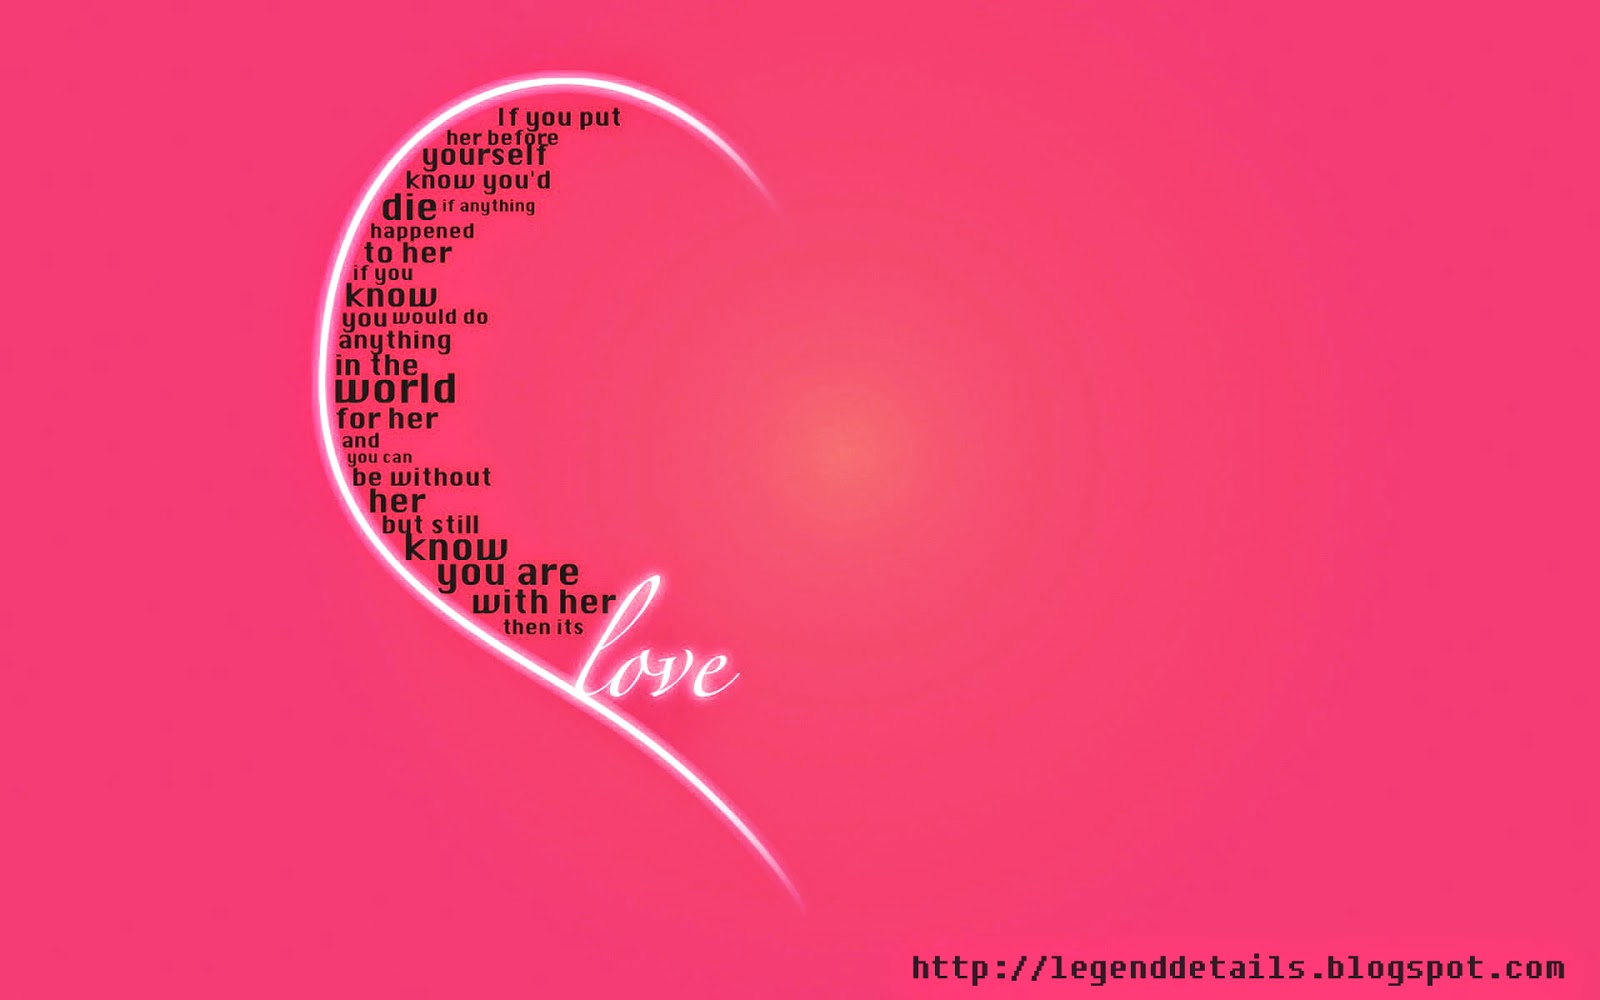 Expressing Love Quotes New Way To Express Your Love  Legendary Quotes